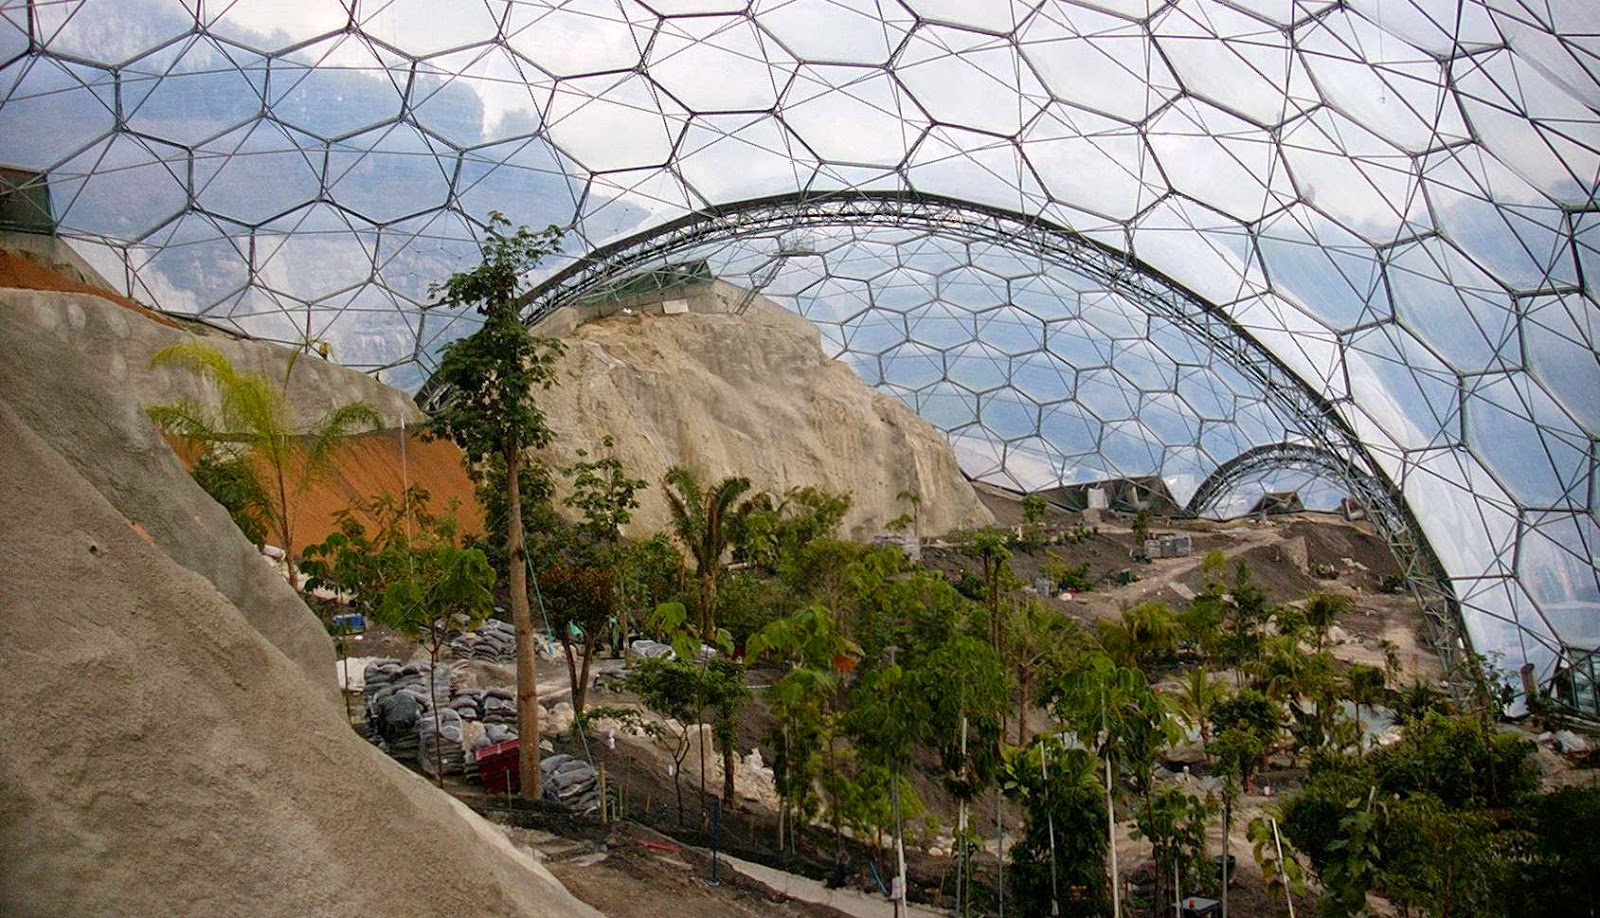 David S Civil Engineering Blog Etfe A Material Of The Future